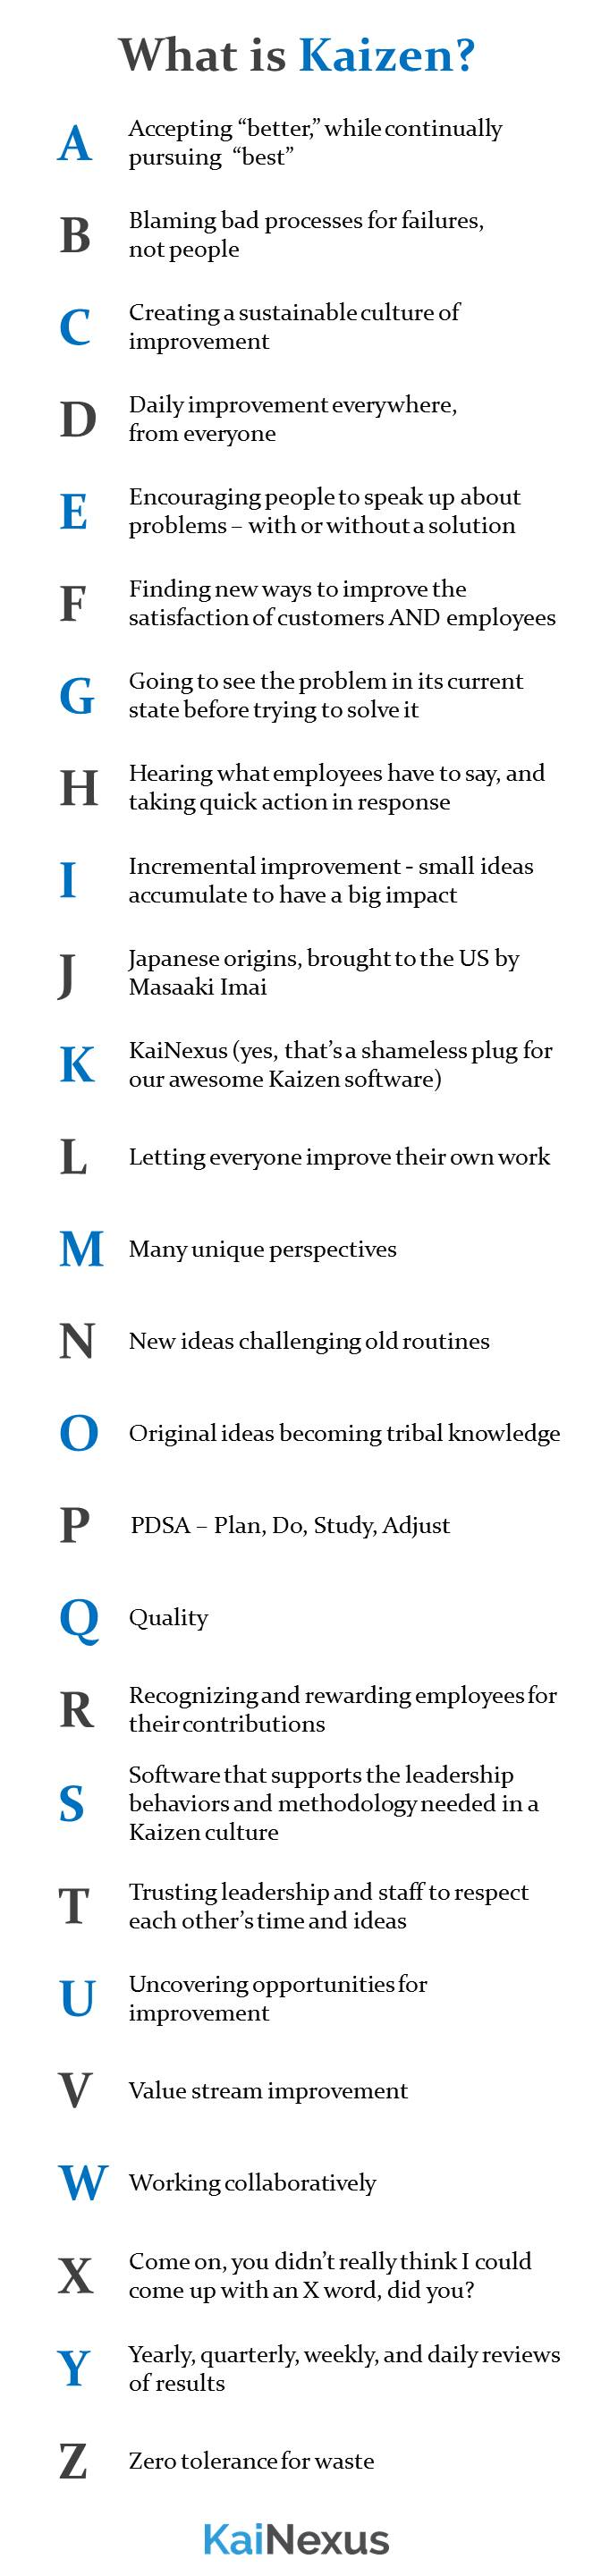 "What is Kaizen, A to Z:  Accepting ""better,"" while continuously pursuing ""best."" Blaming bad processes for failures, not people. Creating a sustainable culture of improvement. Daily improvement everywhere, from everyone. Encouraging people to speak up about problems, with or without a solution. Finding new ways to improve the satisfaction of customers and employees. Going to see the problem in its current state before trying to solve it. Hearing what employees have to say, and taking quick action in response. Incremental improvement - small ideas accumulate to have a big impact. Japanese origins, brought to the US by Masaaki Imai. KaiNexus (yes, that's a shameless plug for our continuous improvement software). Letting everyone improve their own work. Many unique perspectives. New ideas challenging old routines. Original ideas becoming tribal knowledge. PDSA. Quality. Recognizing and rewarding employees for their contributions. Software that supports the leadership behaviors and methodology necessary for a Kaizen culture. Trusting leadership and staff to respect each other's time and ideas. Uncovering opportunities for improvement. Value stream improvement. Working collaboratively. Yearly, quarterly, monthly, weekly, and daily reviews of results. Zero tolerance for waste."